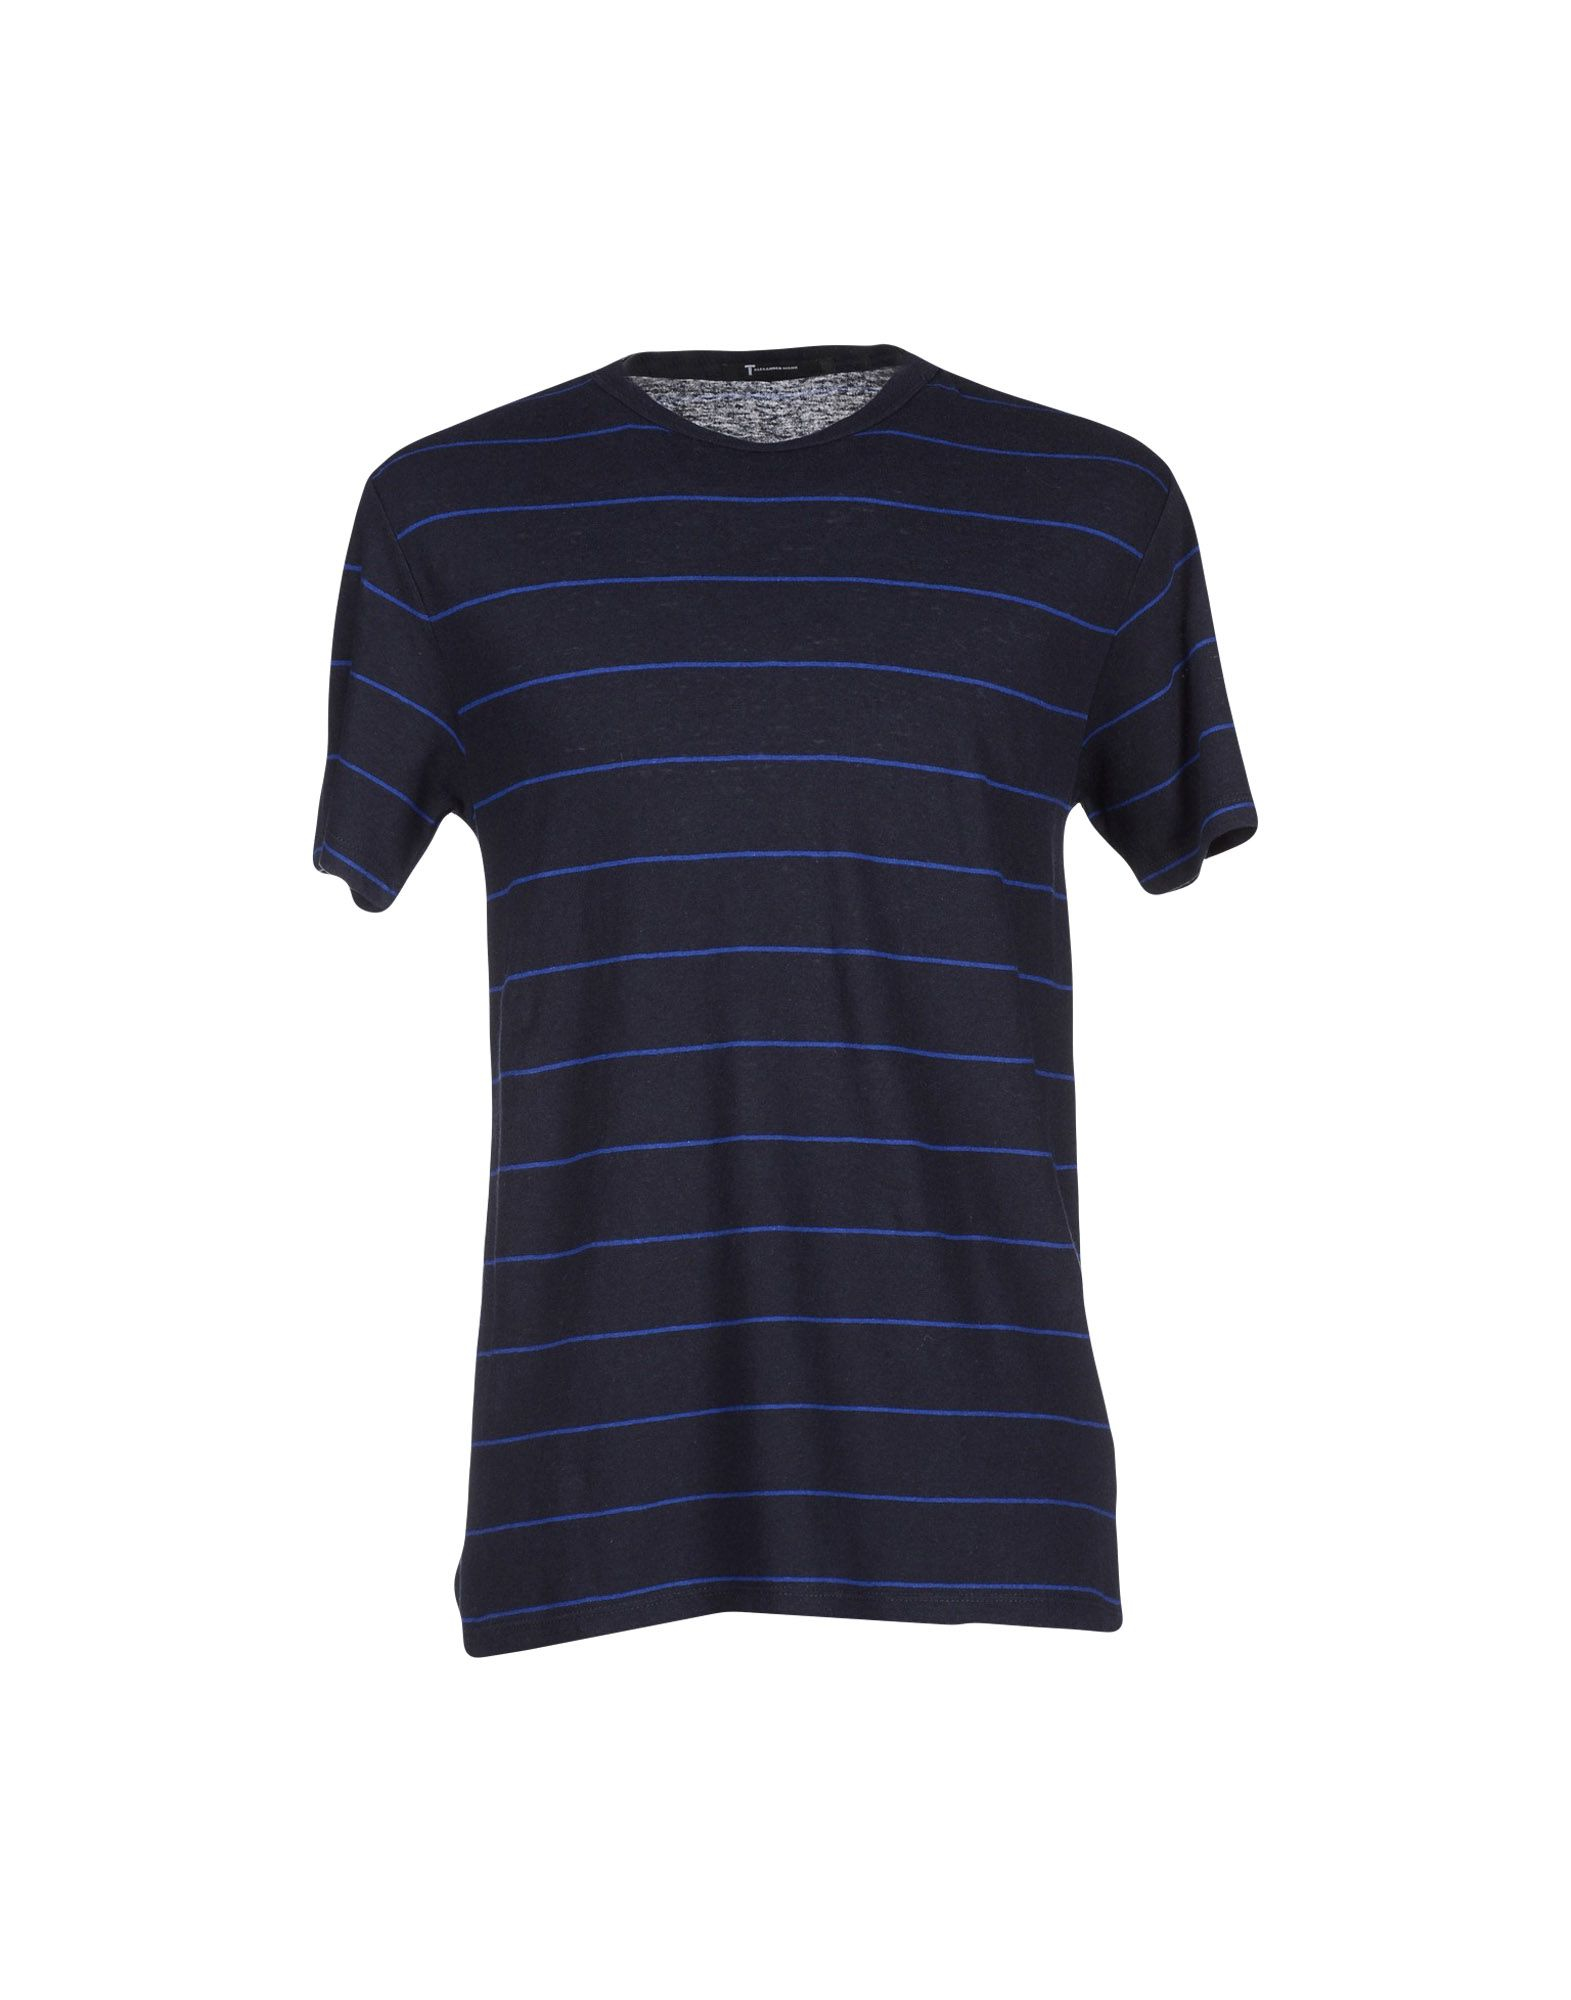 T by alexander wang t shirt in blue for men lyst for T by alexander wang t shirt